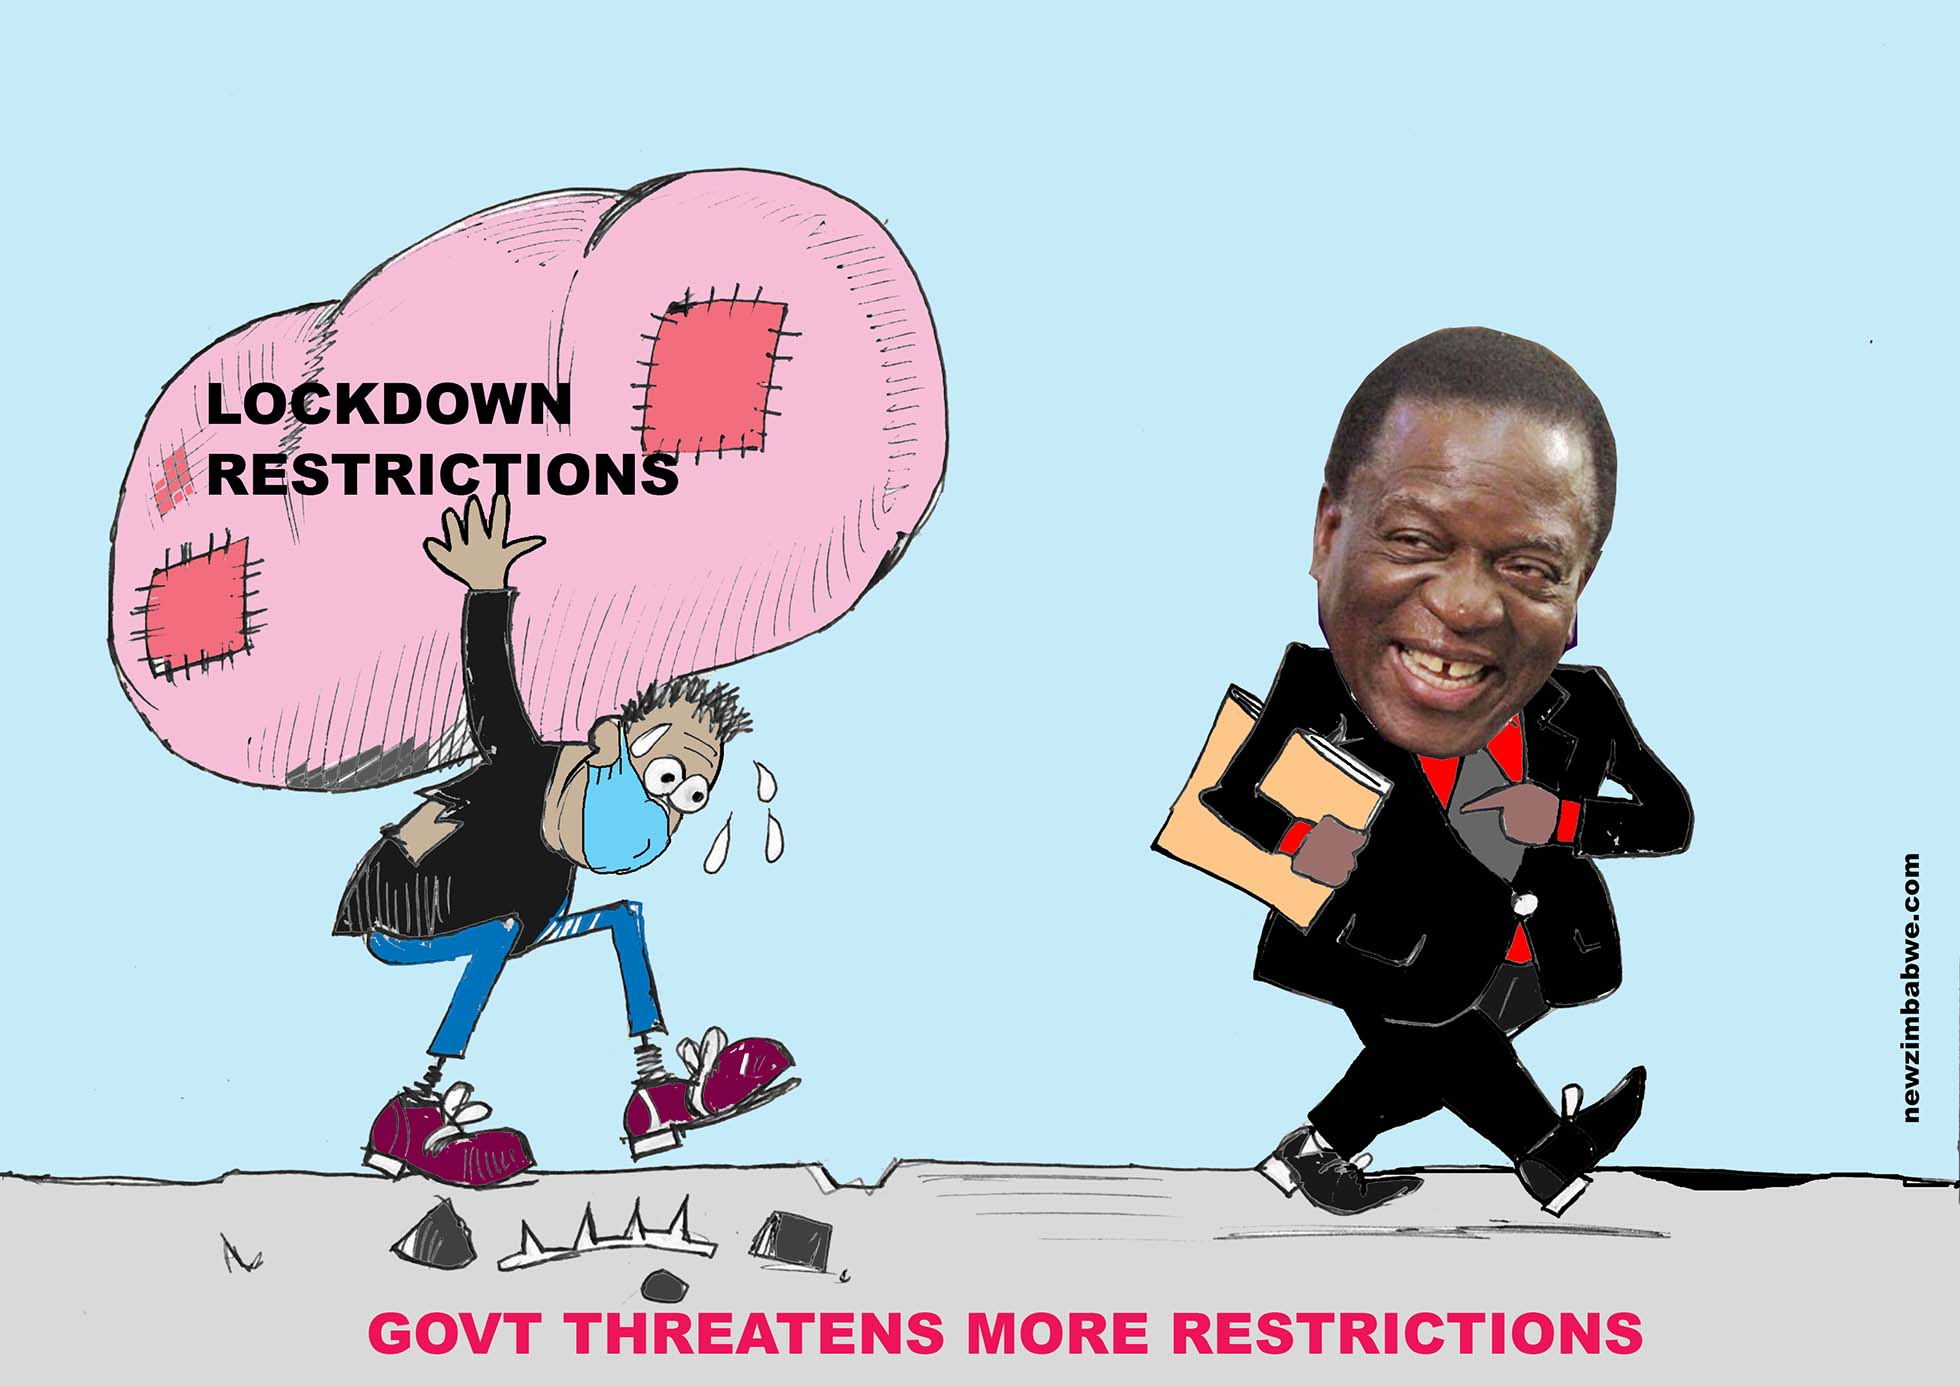 Govt threatens more restrictions